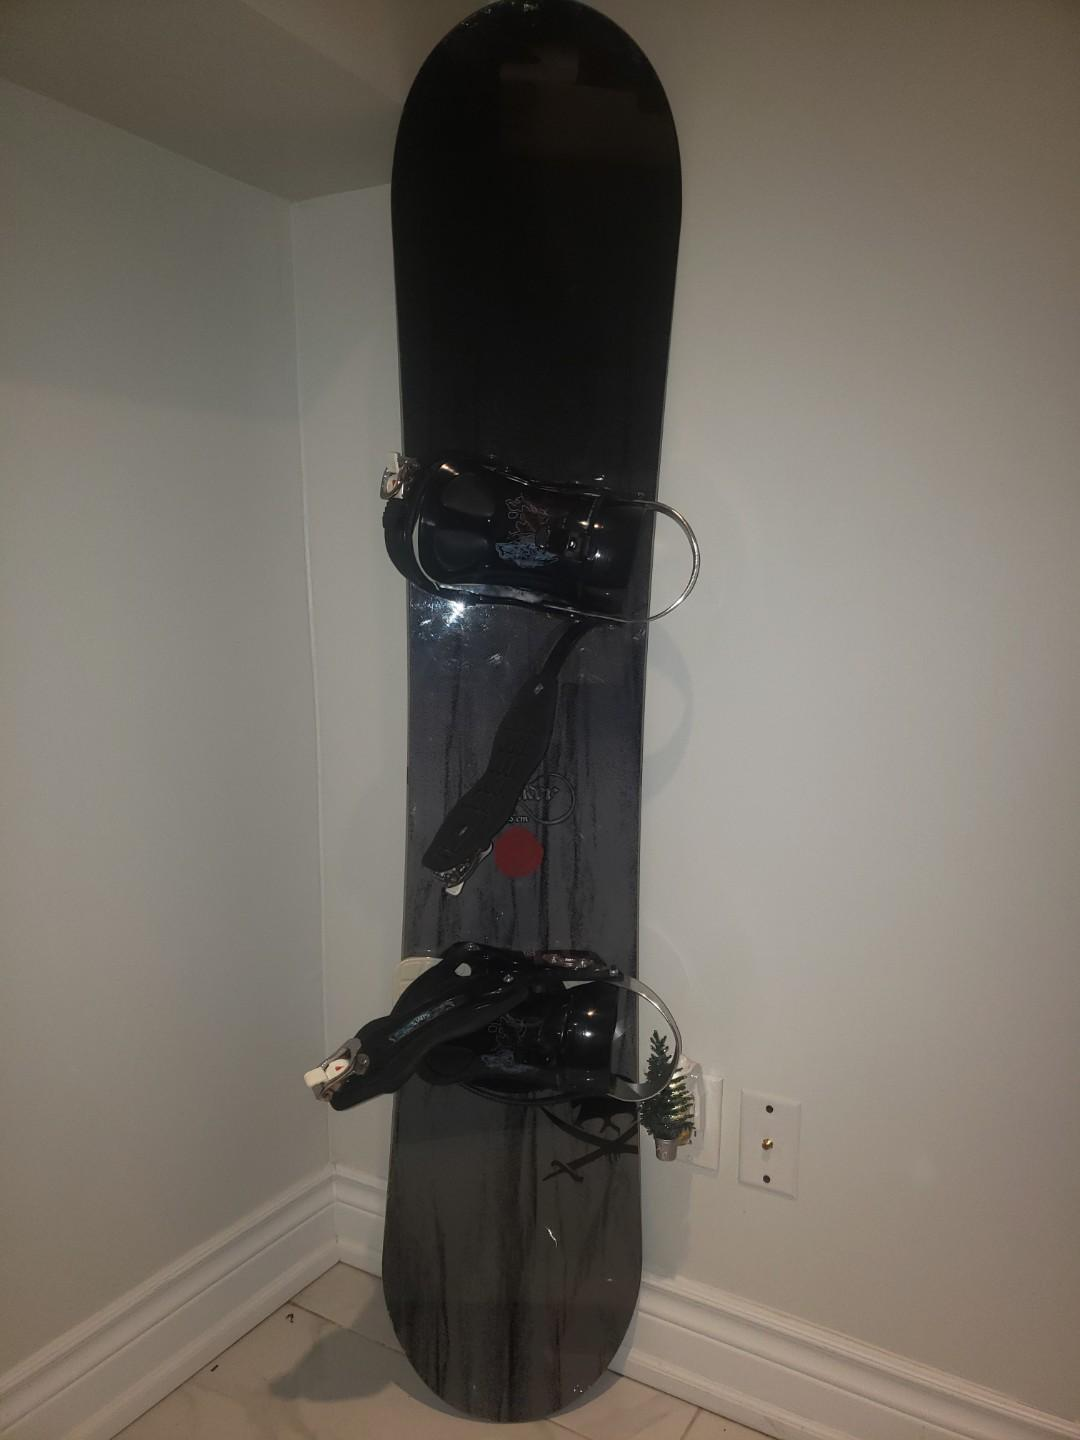 Forum Raider 155inch snowboard SIMS Bindings great for riders 5,9-6,4